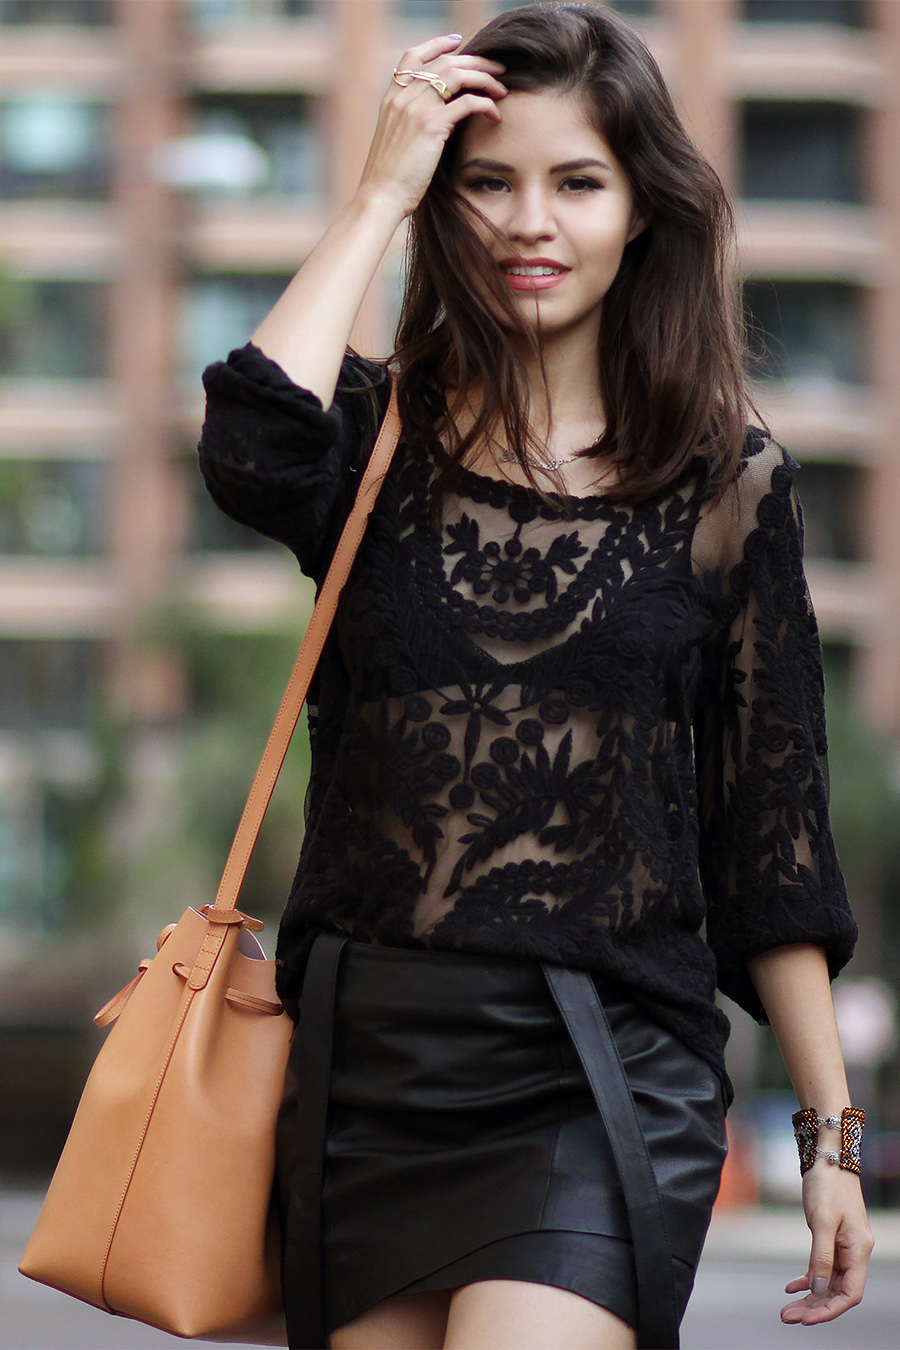 We Love Everything Lace Just The Design